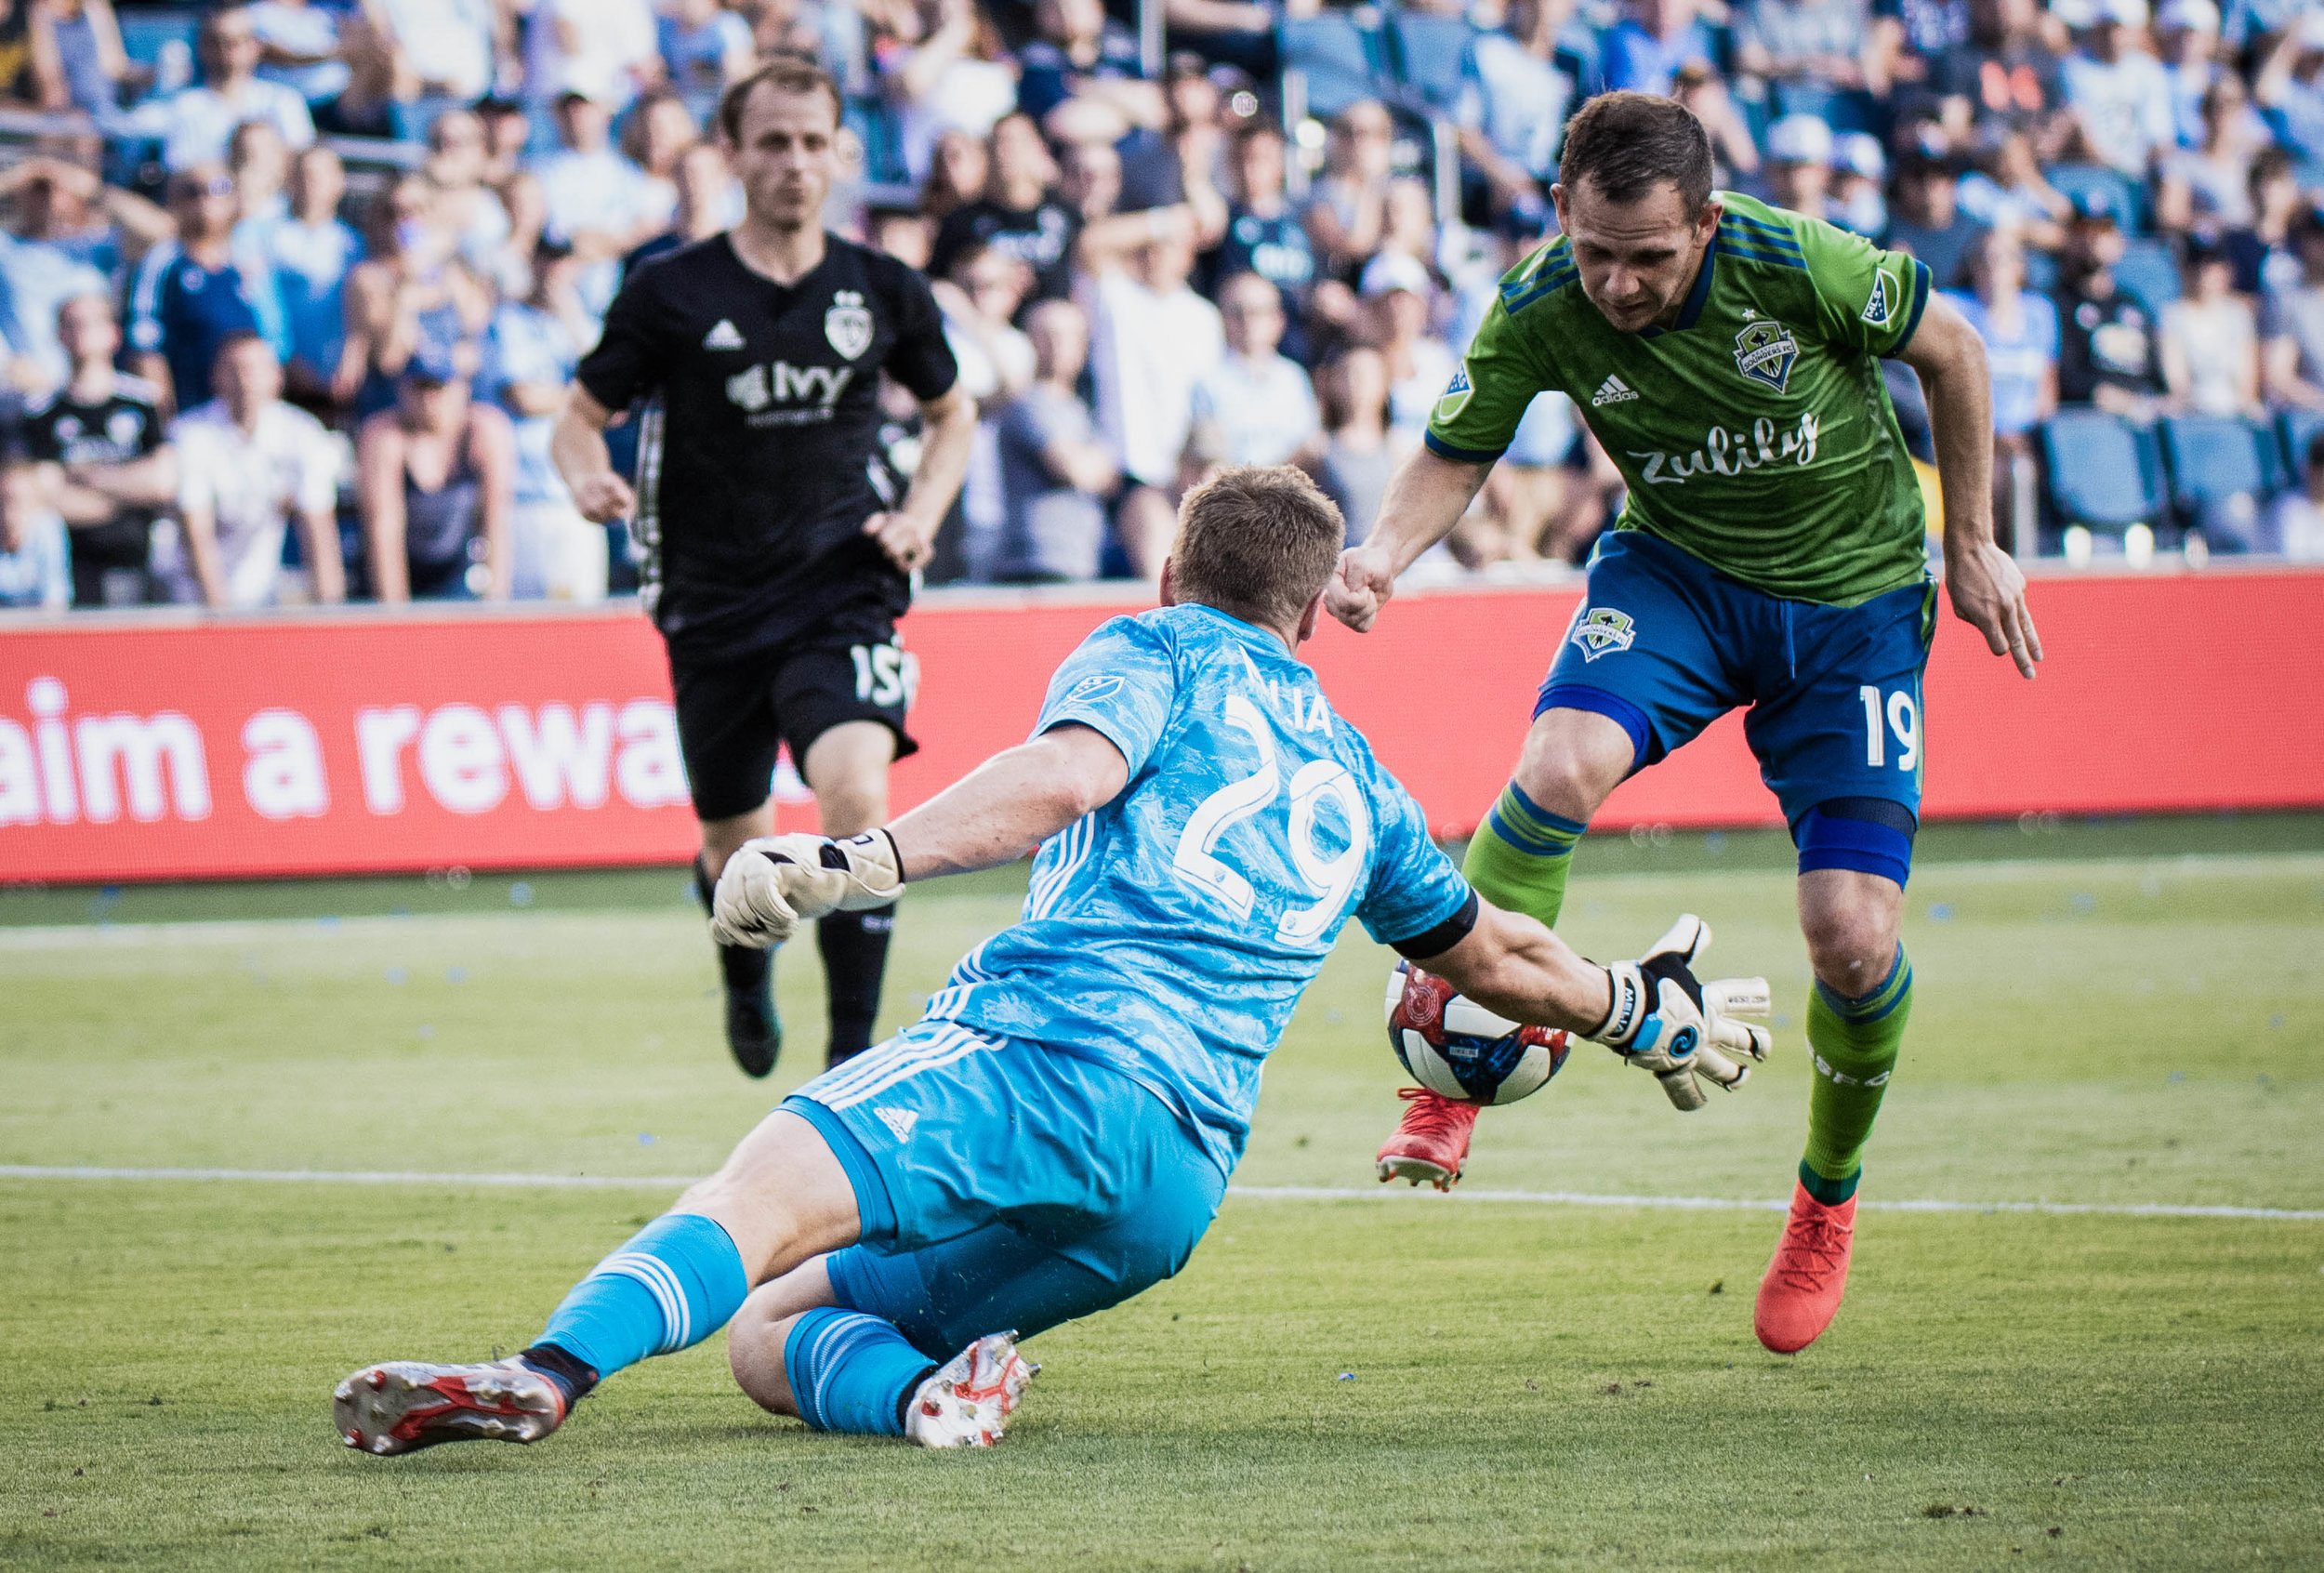 Tim Melia (29) makes a save during Sporting Kansas City's match against Seattle Sounders FC on Sunday, May 26, 2019 at Children's Mercy Park in Kansas City, Kansas. Sporting defeated the Sounders 3-2. (Photo by: Noah Riffe)